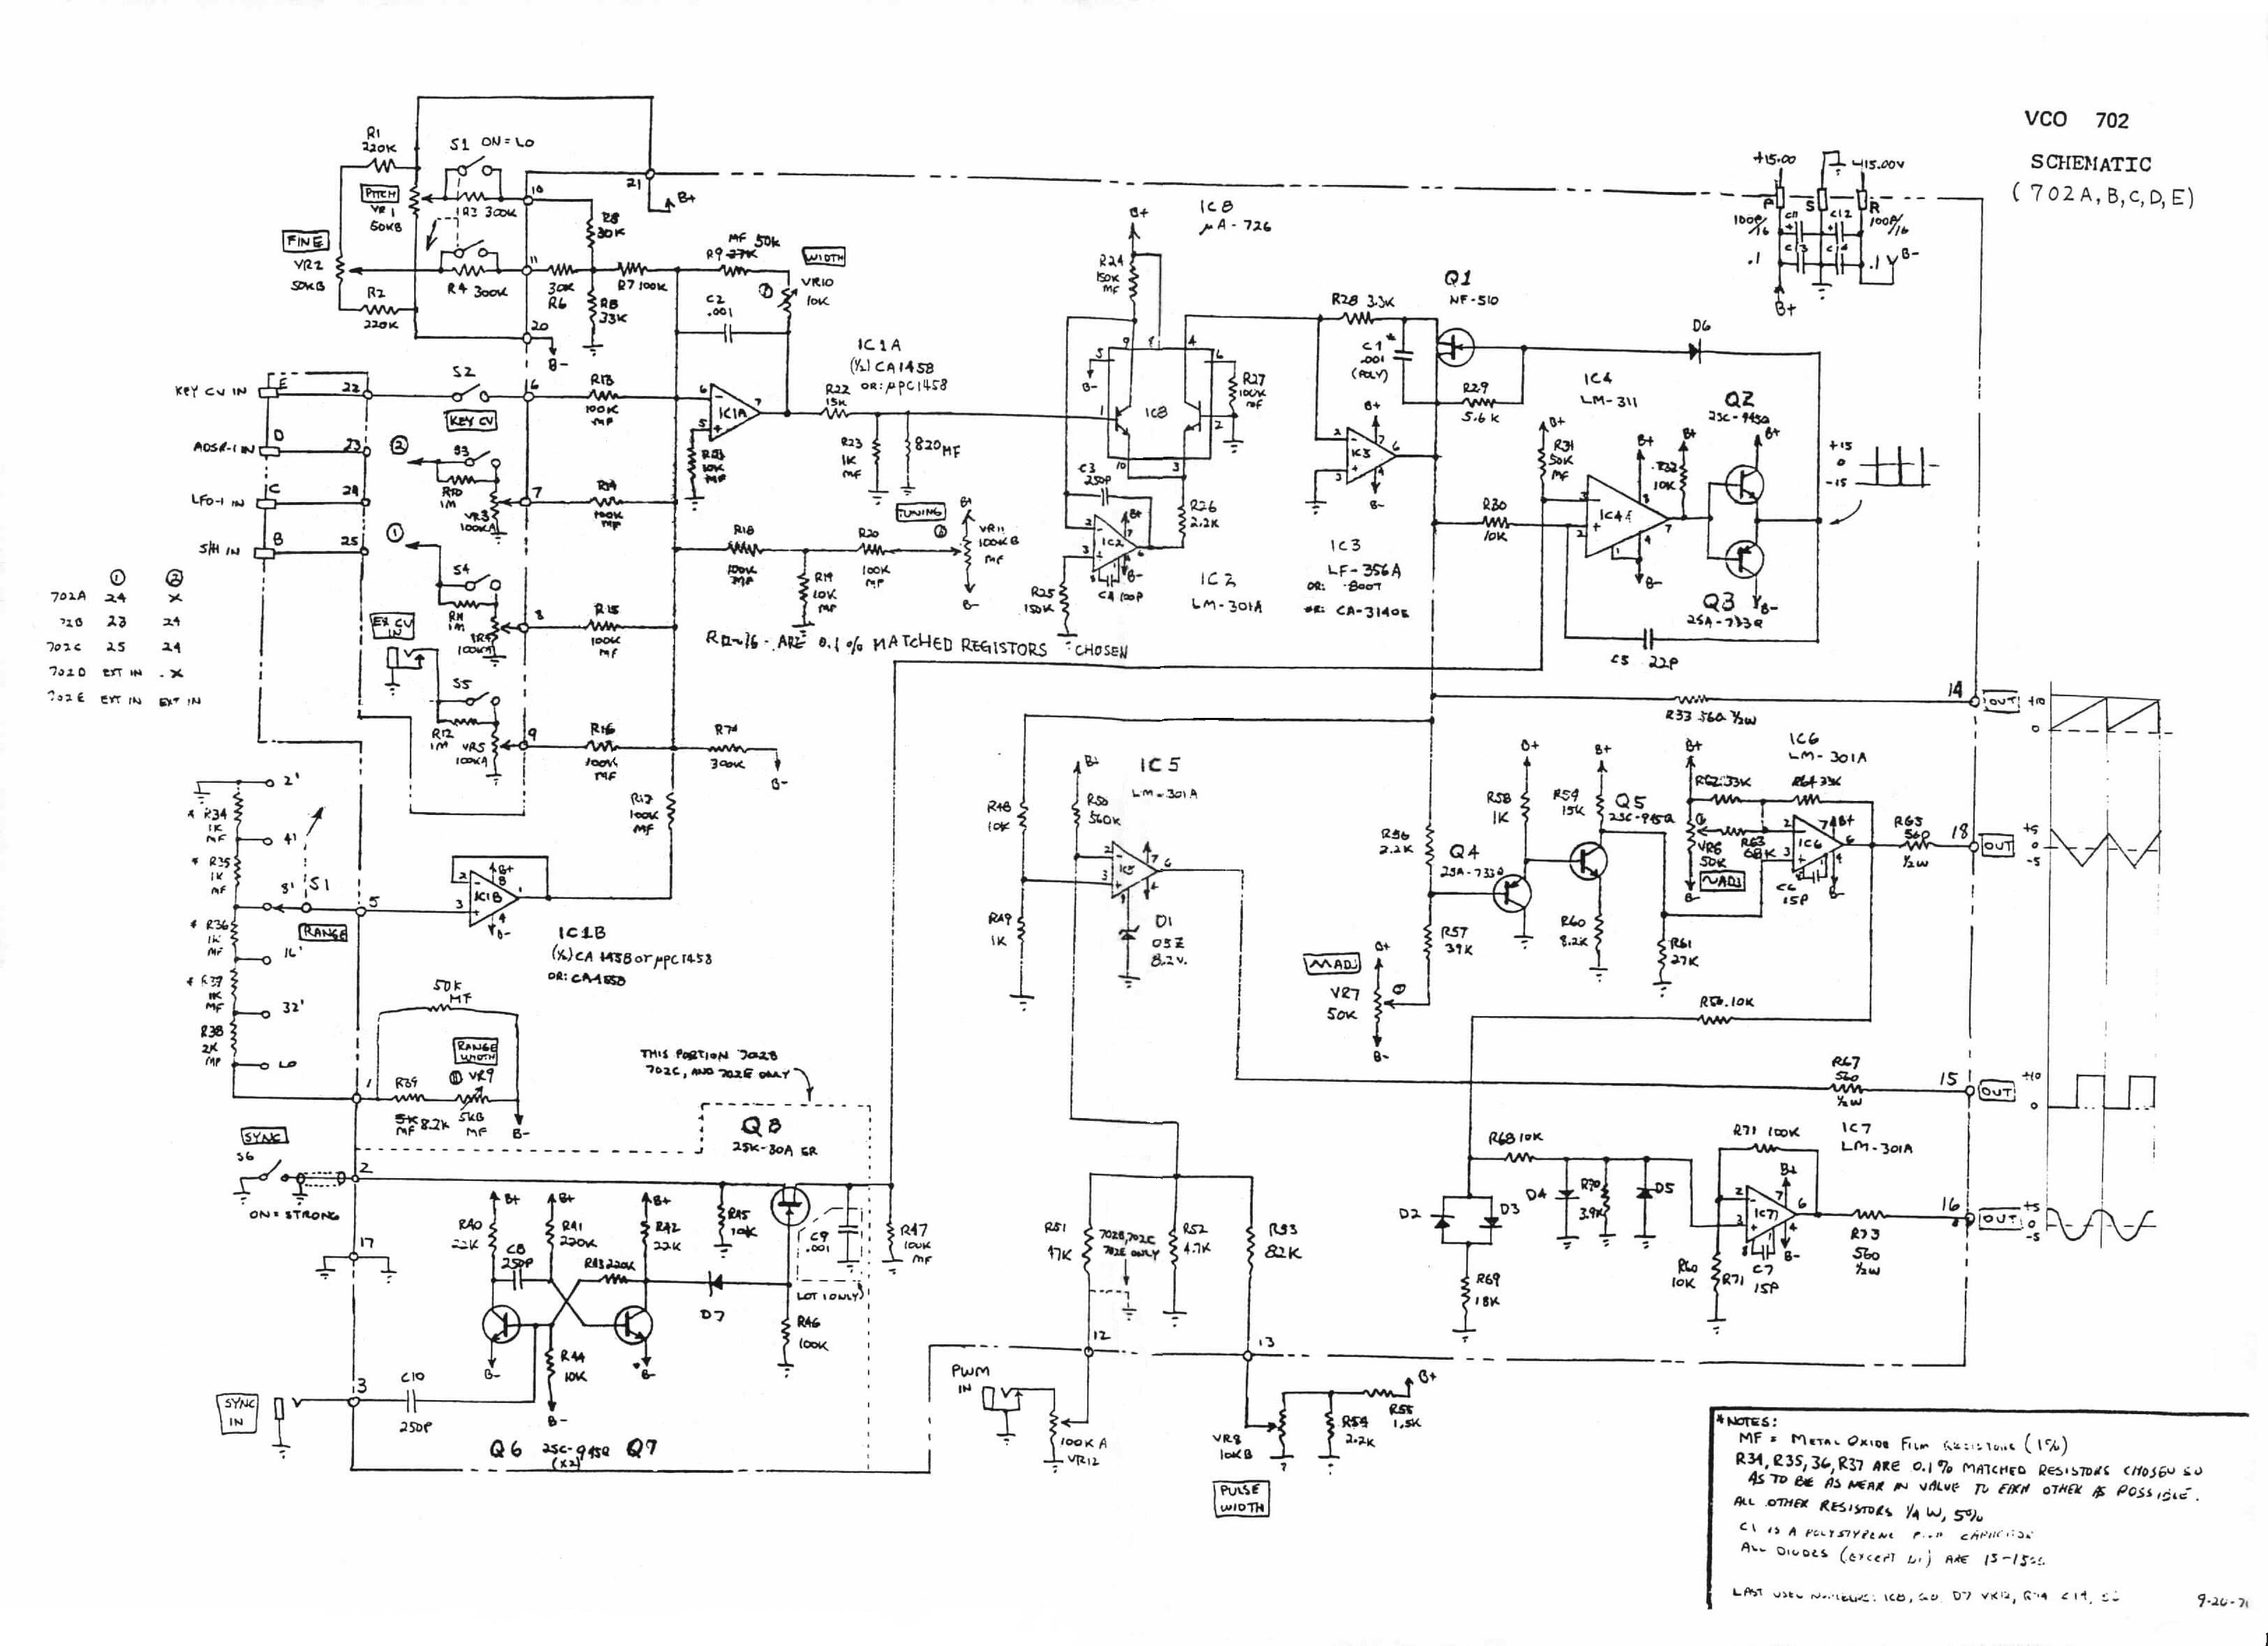 Ua726 Synth Vco Issues Continued Gearslutz Circuit Diagram The Designer Of Board Used It On A Roland 702 And Changed R9 From 50k To 68k So That Trimpot Vr10 Would Have Required Leeway